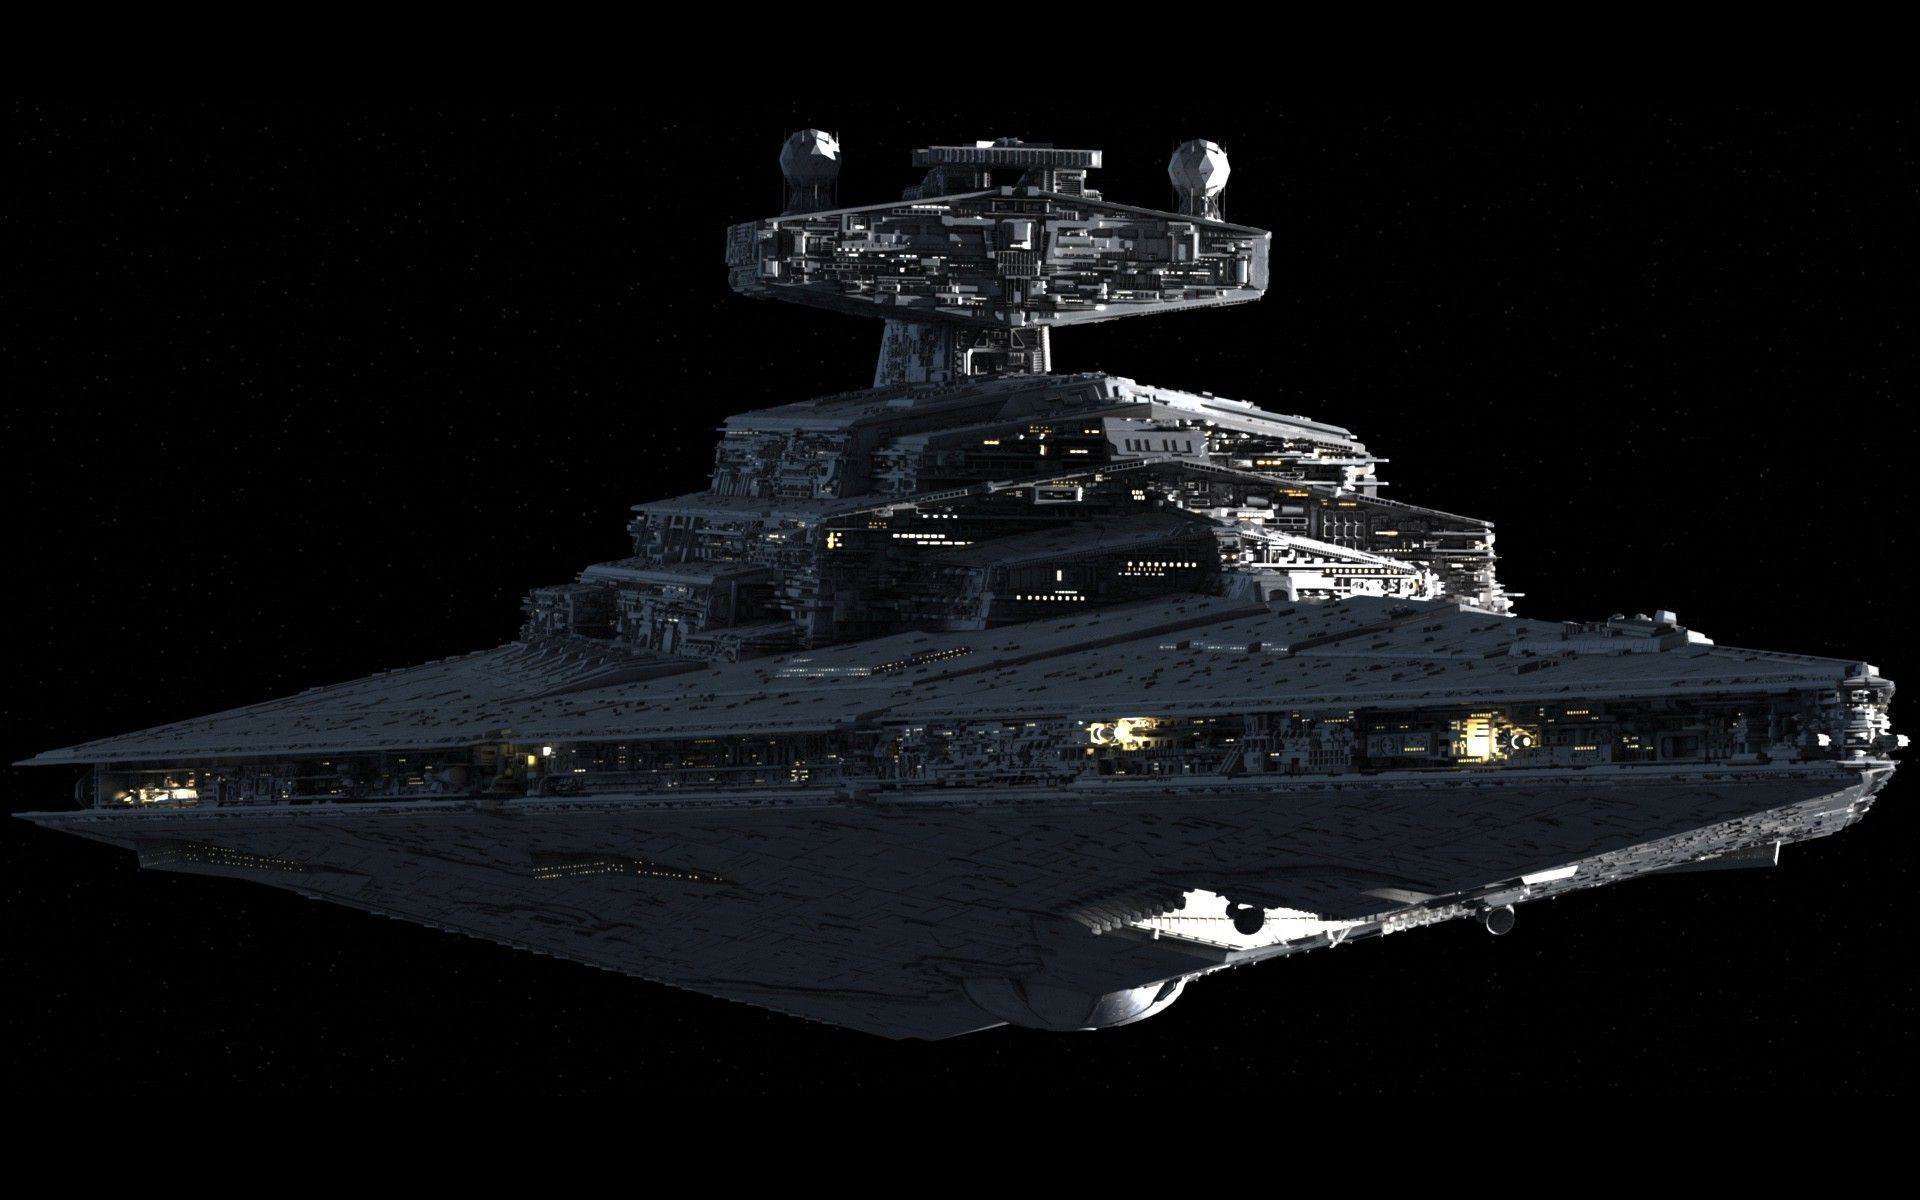 Star Wars Star Destroyer Wallpapers Top Free Star Wars Star Destroyer Backgrounds Wallpaperaccess